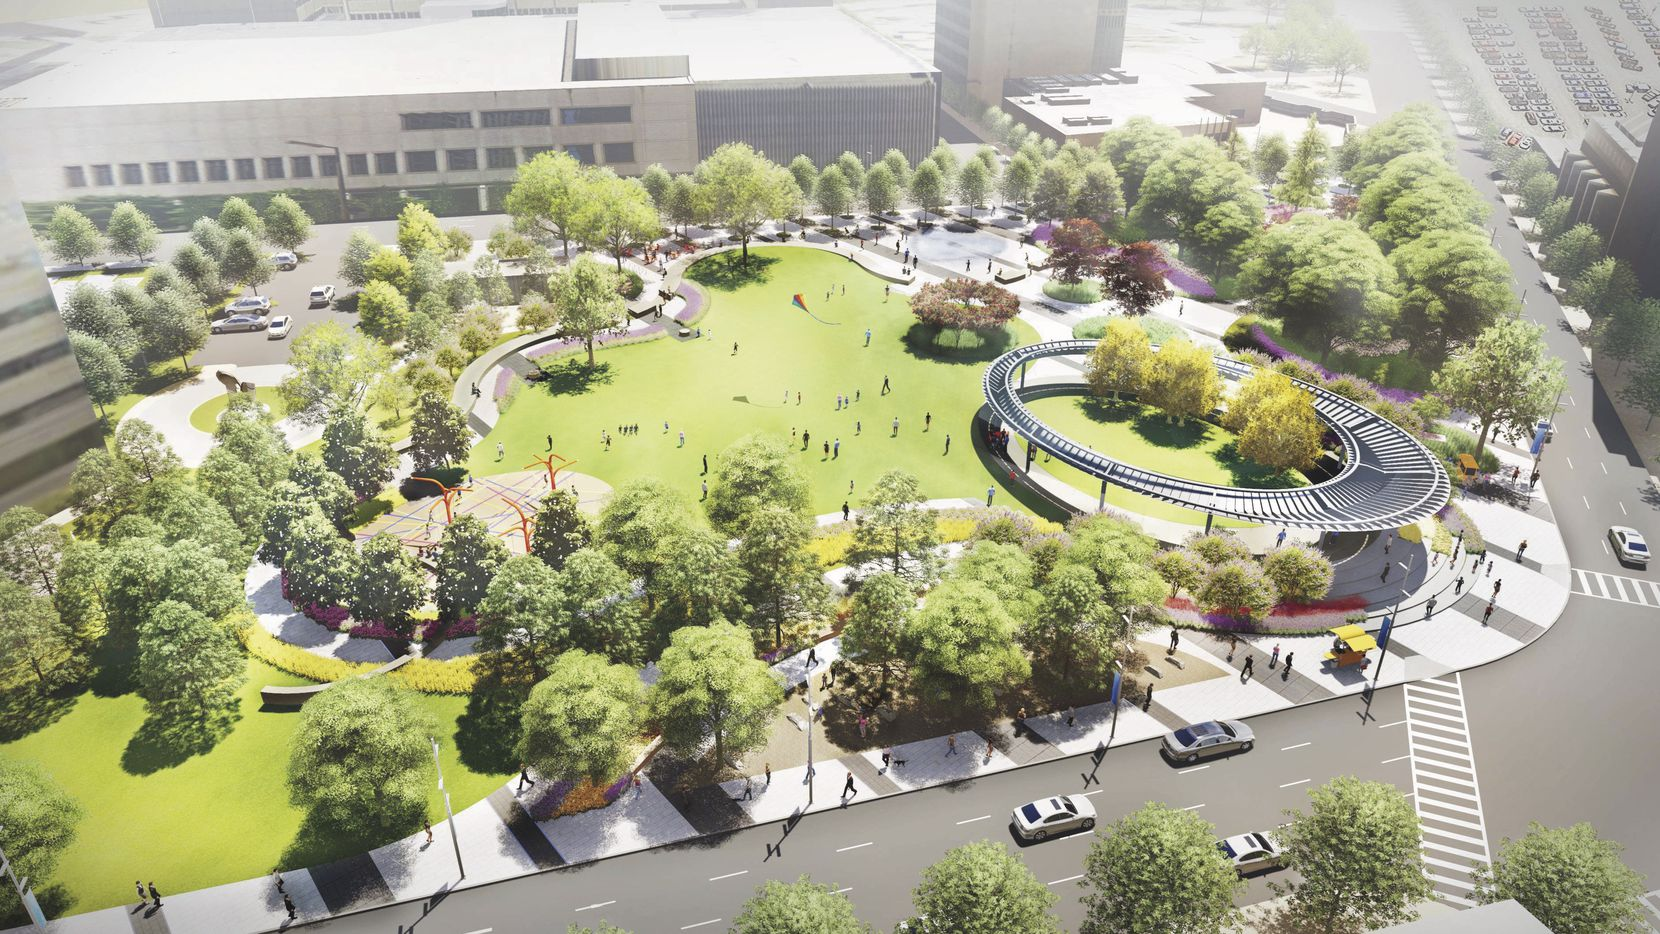 Construction starts on April 17 on the $15 million Pacific Plaza park.